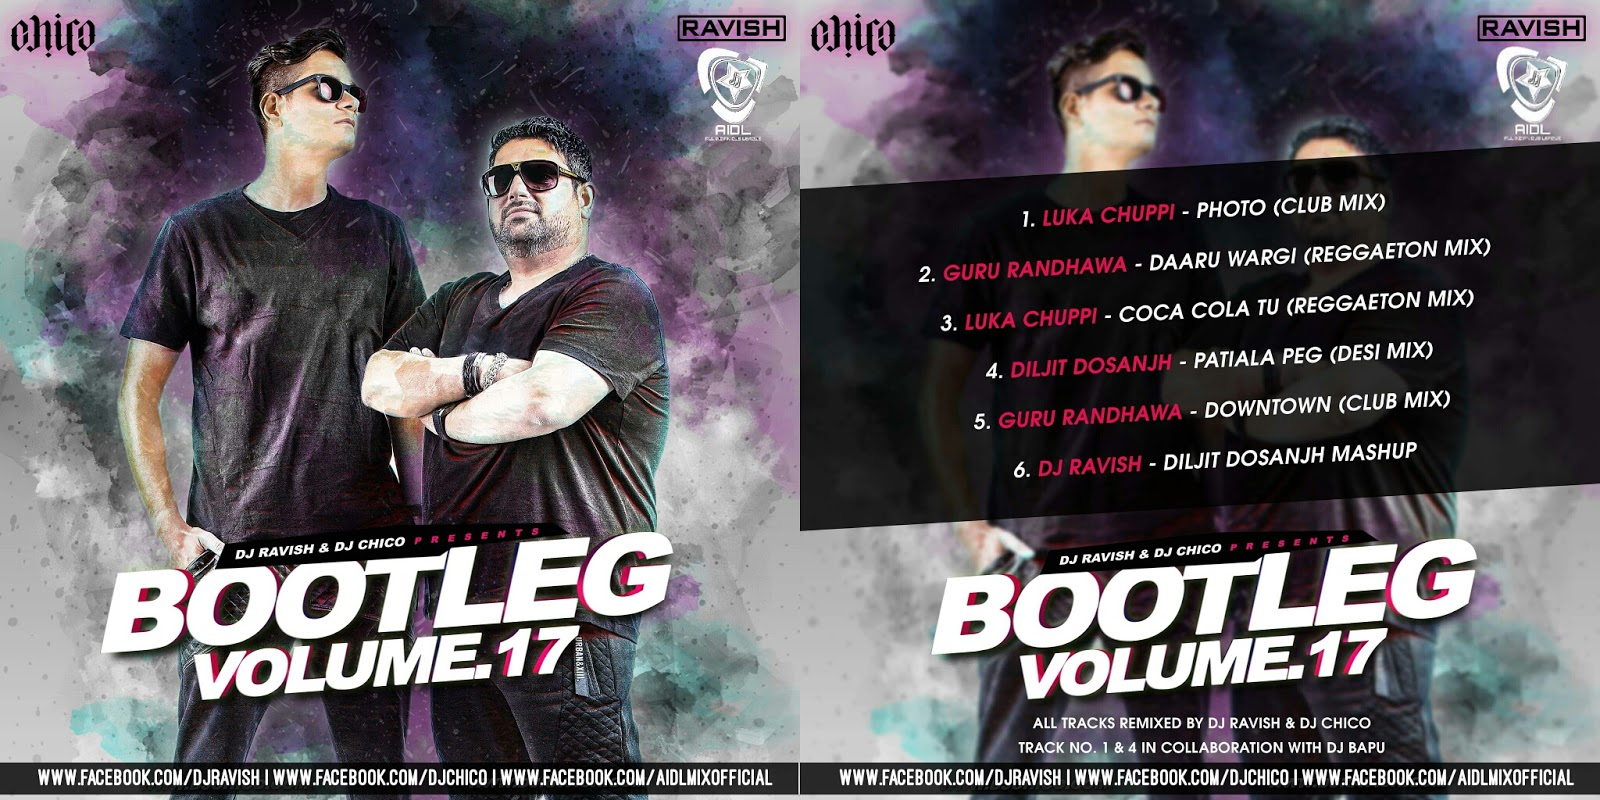 Bootleg Vol 17 - DJ Ravish & DJ Chico | AIDL - All Indian